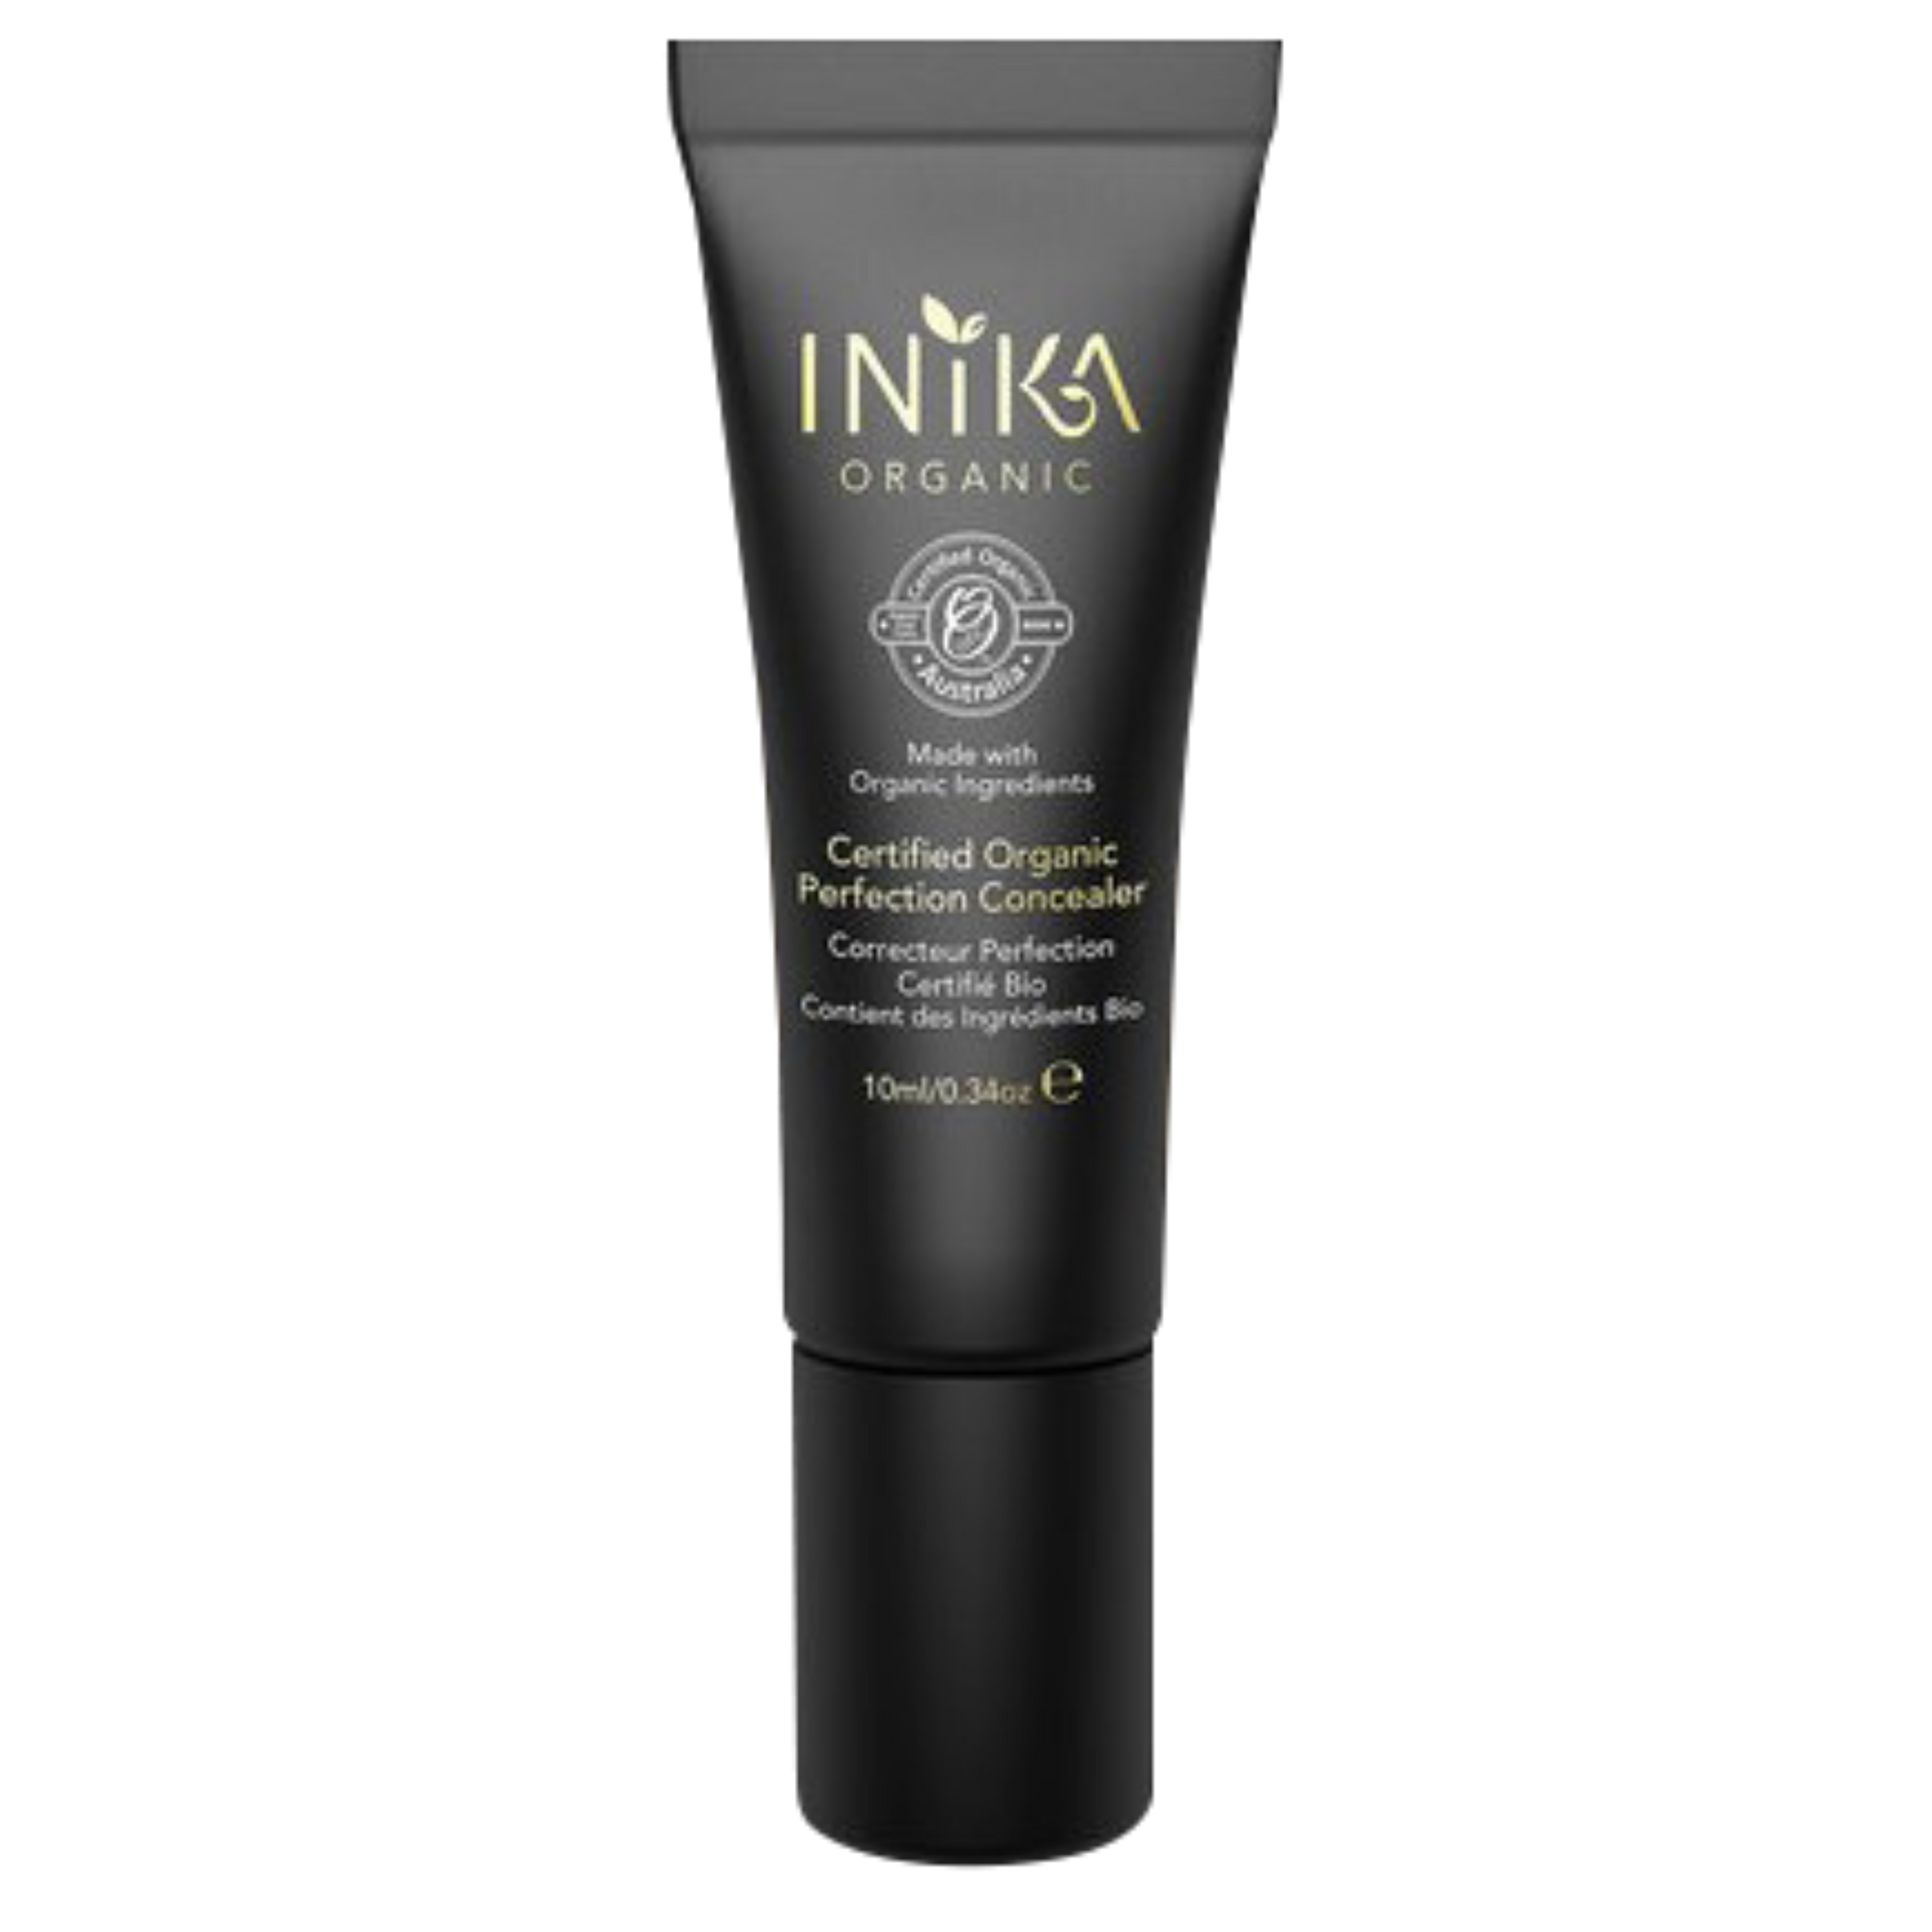 Inika Organic Certified Concealer Medium MINI 4ml (halal/vegan)